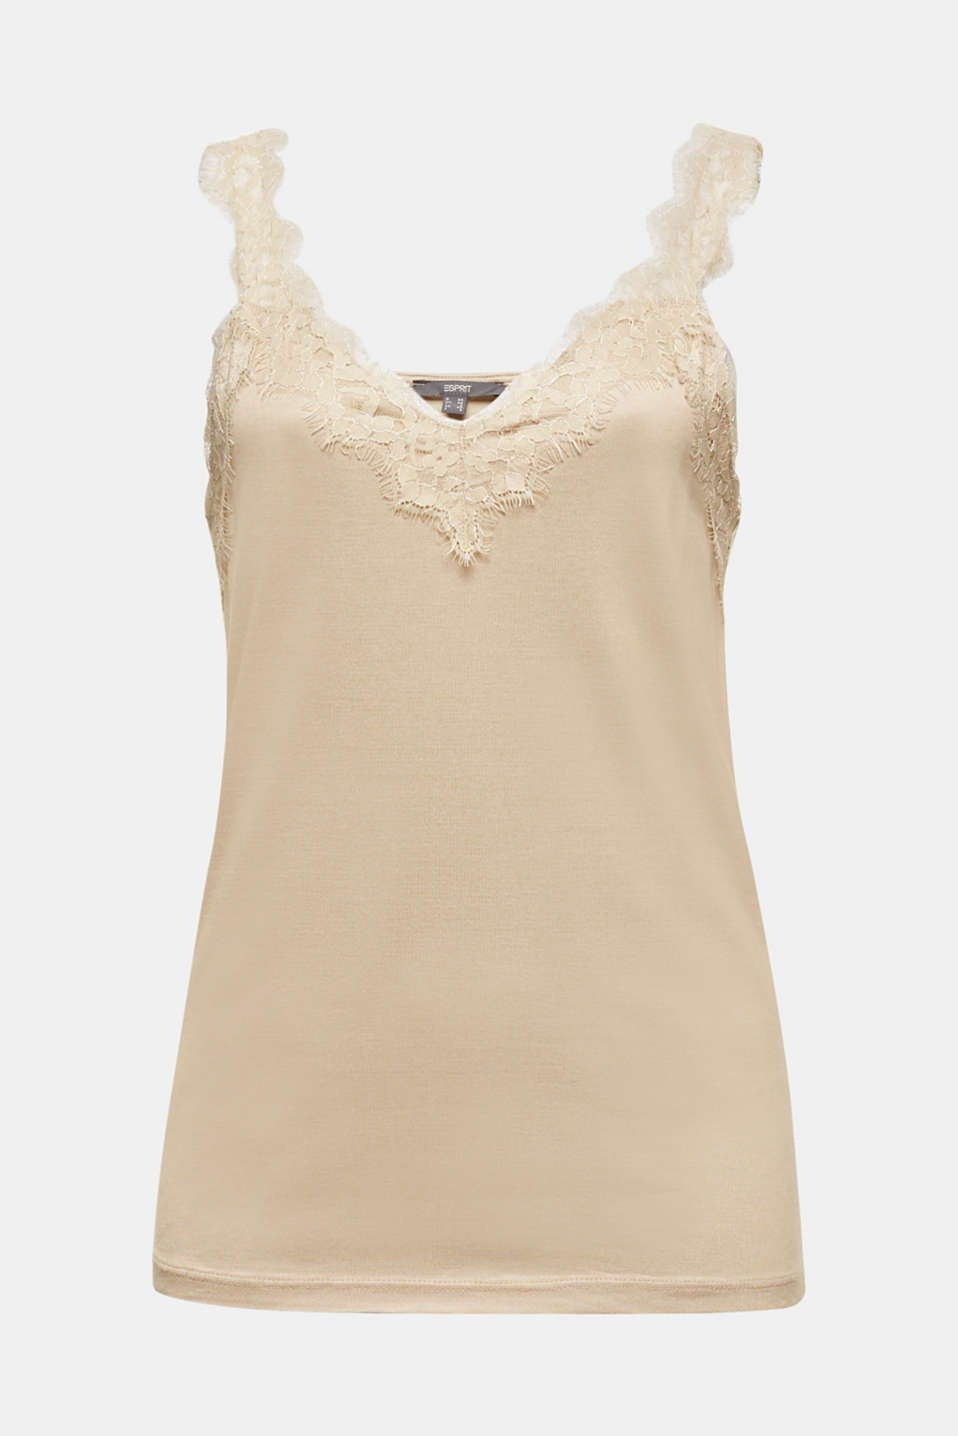 Jersey top with lace details, KHAKI BEIGE, detail image number 6